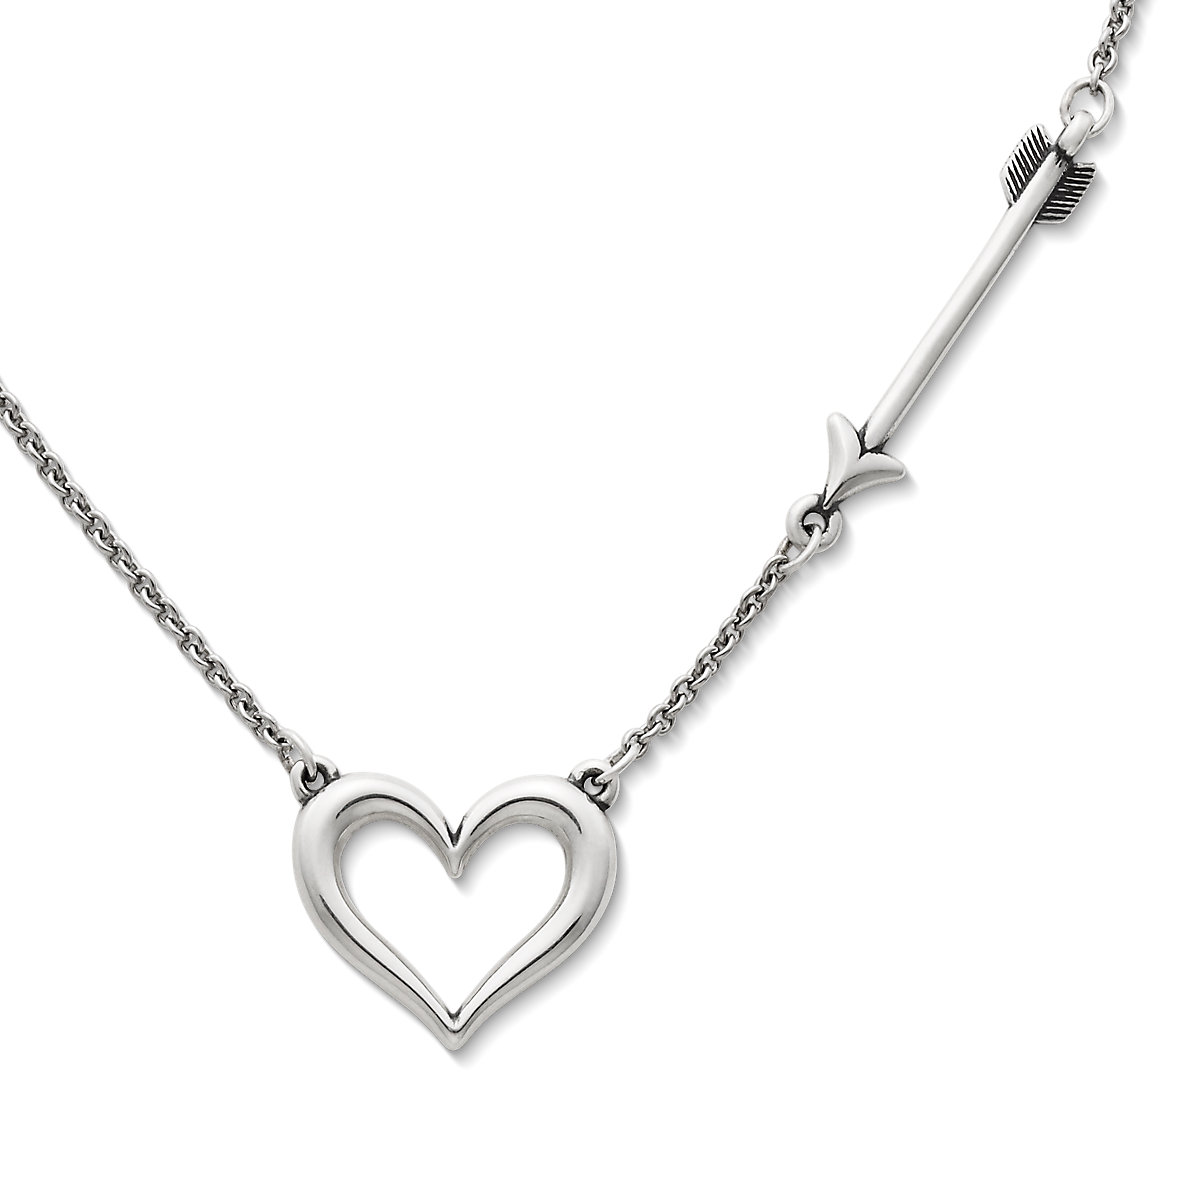 Silver necklaces pendant necklaces james avery love struck heart necklace aloadofball Image collections